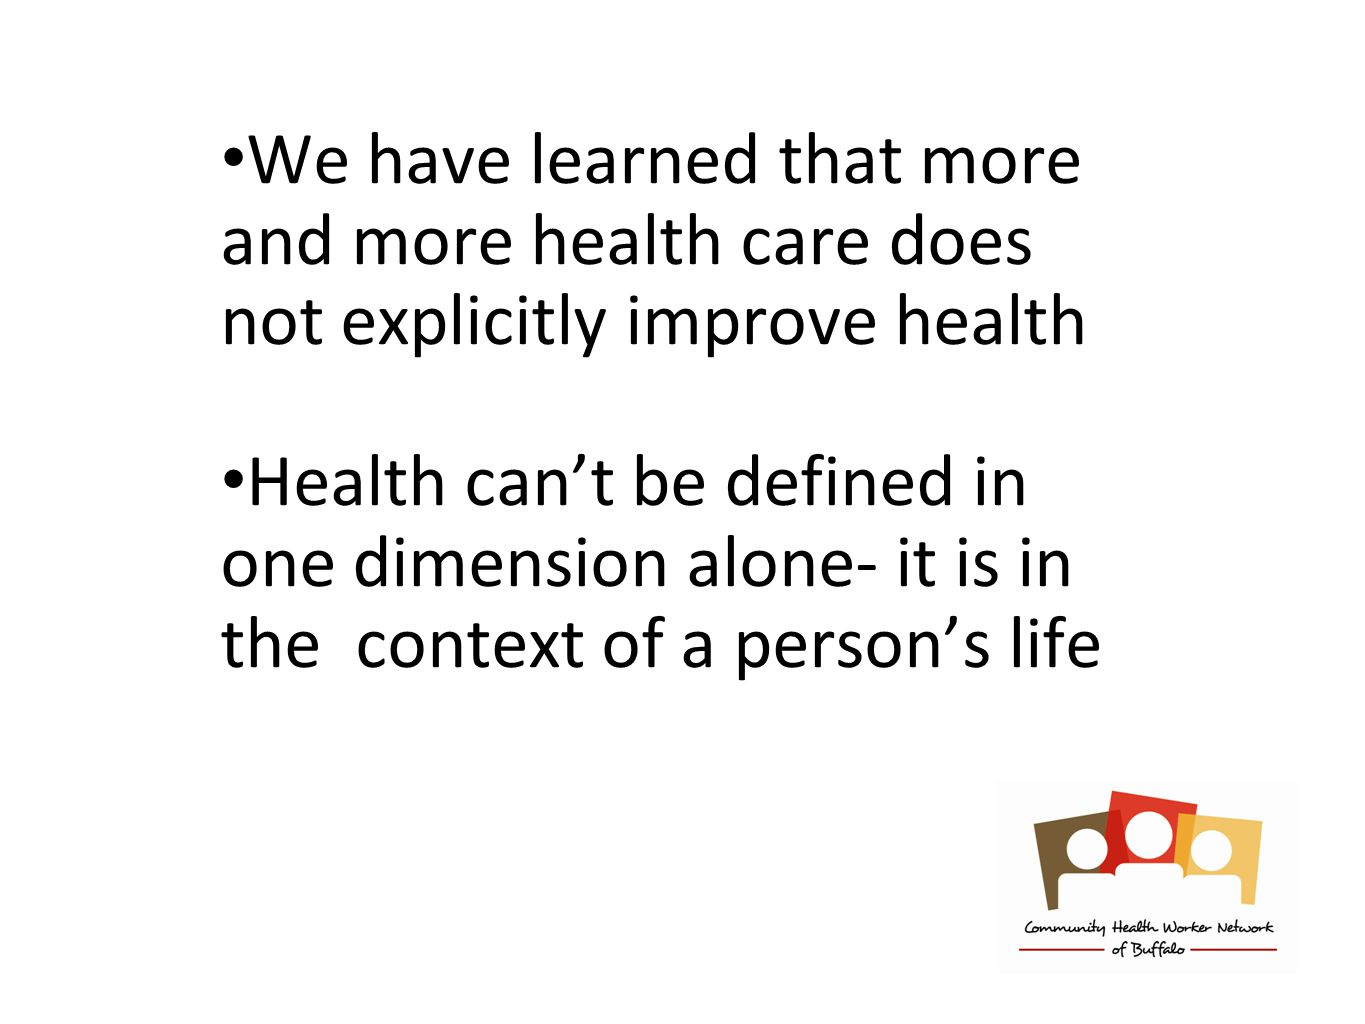 We have learned that more and more health care does not explicitly improve health Health can't be defined in one dimension alone- it is in the context of a person's life